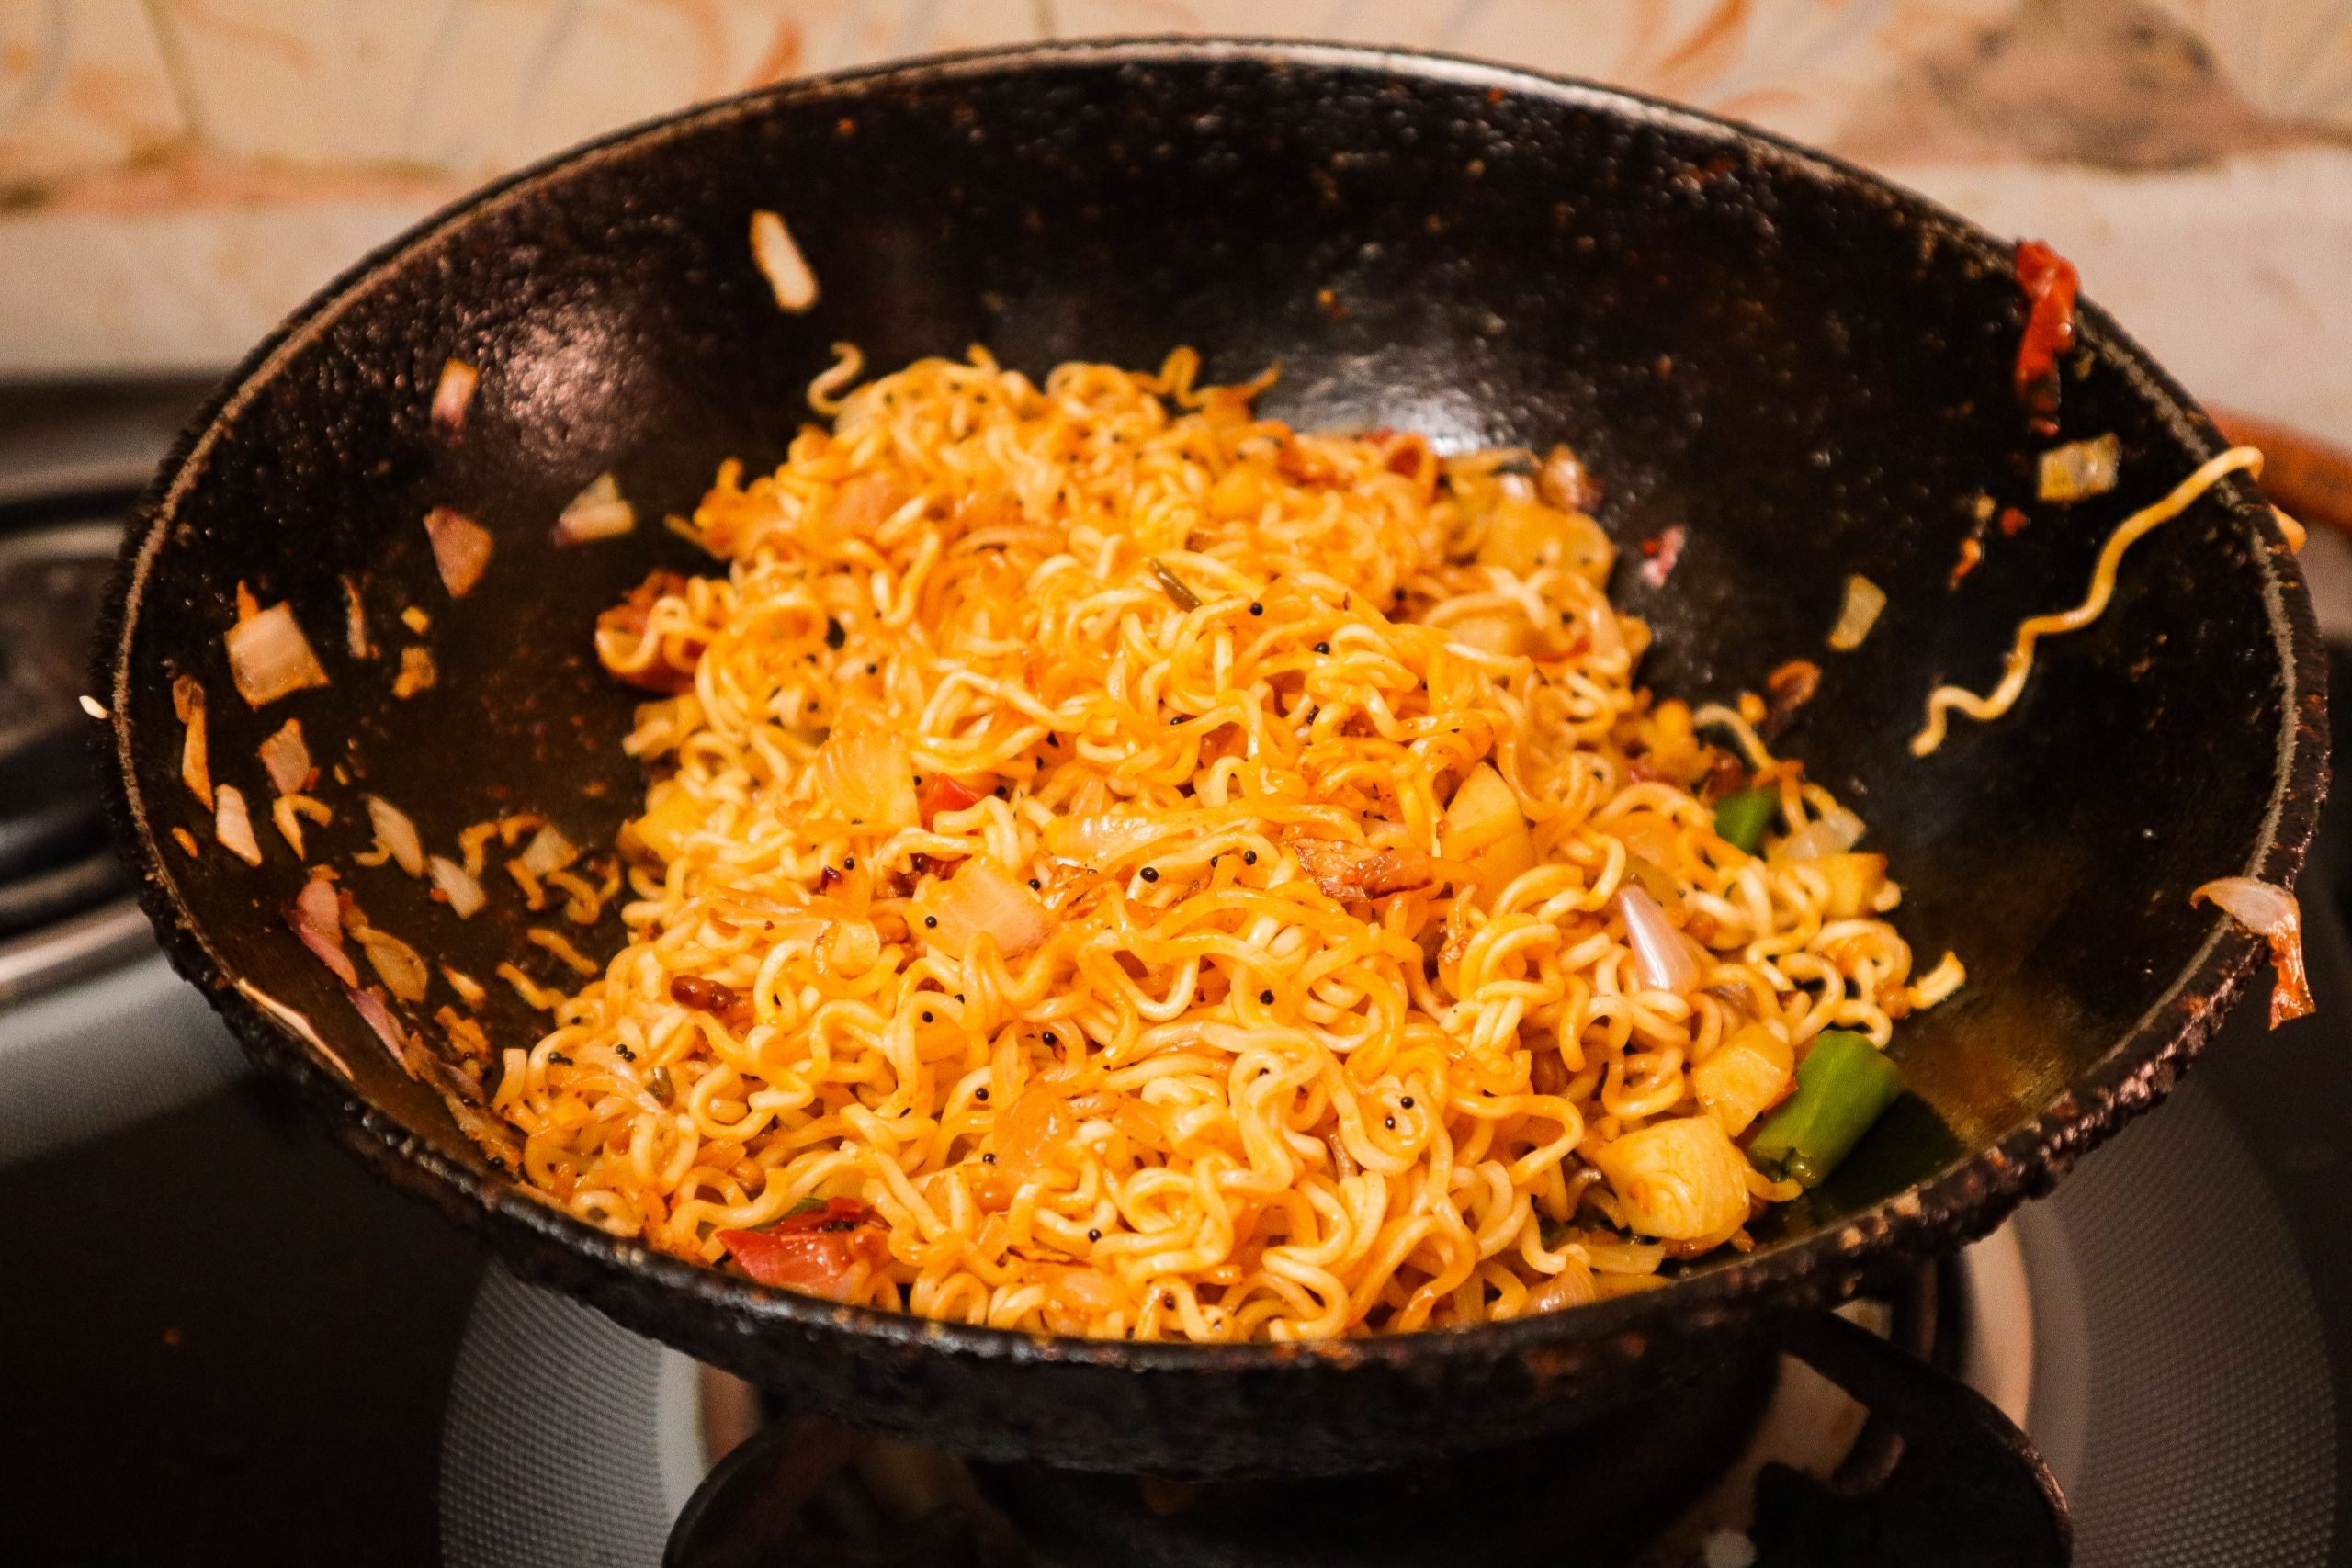 Cooking noodles in a deep fry pan